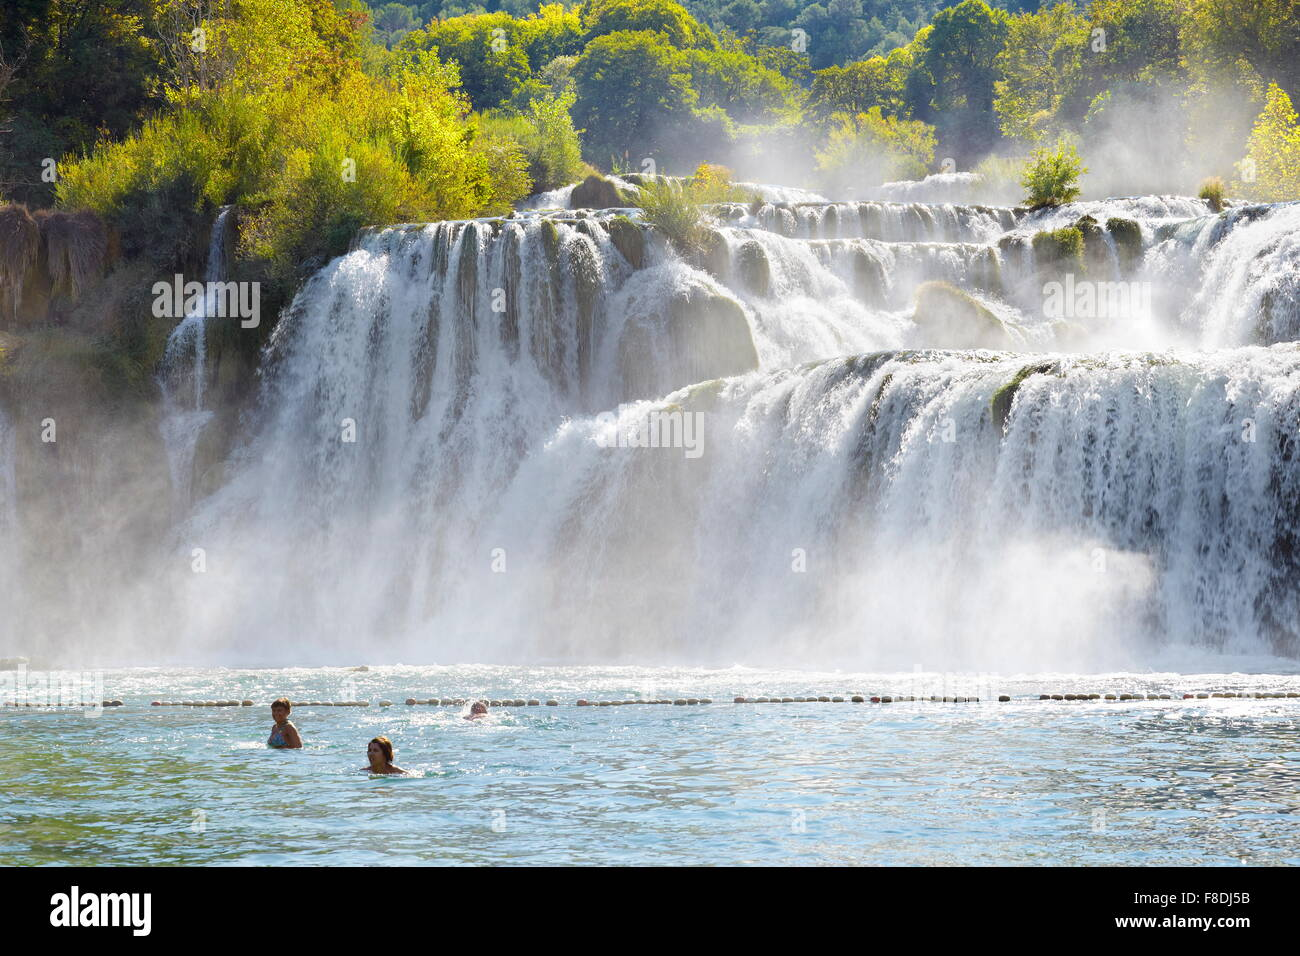 Krka waterfalls, Krka National Park, Croatia, Europe - Stock Image